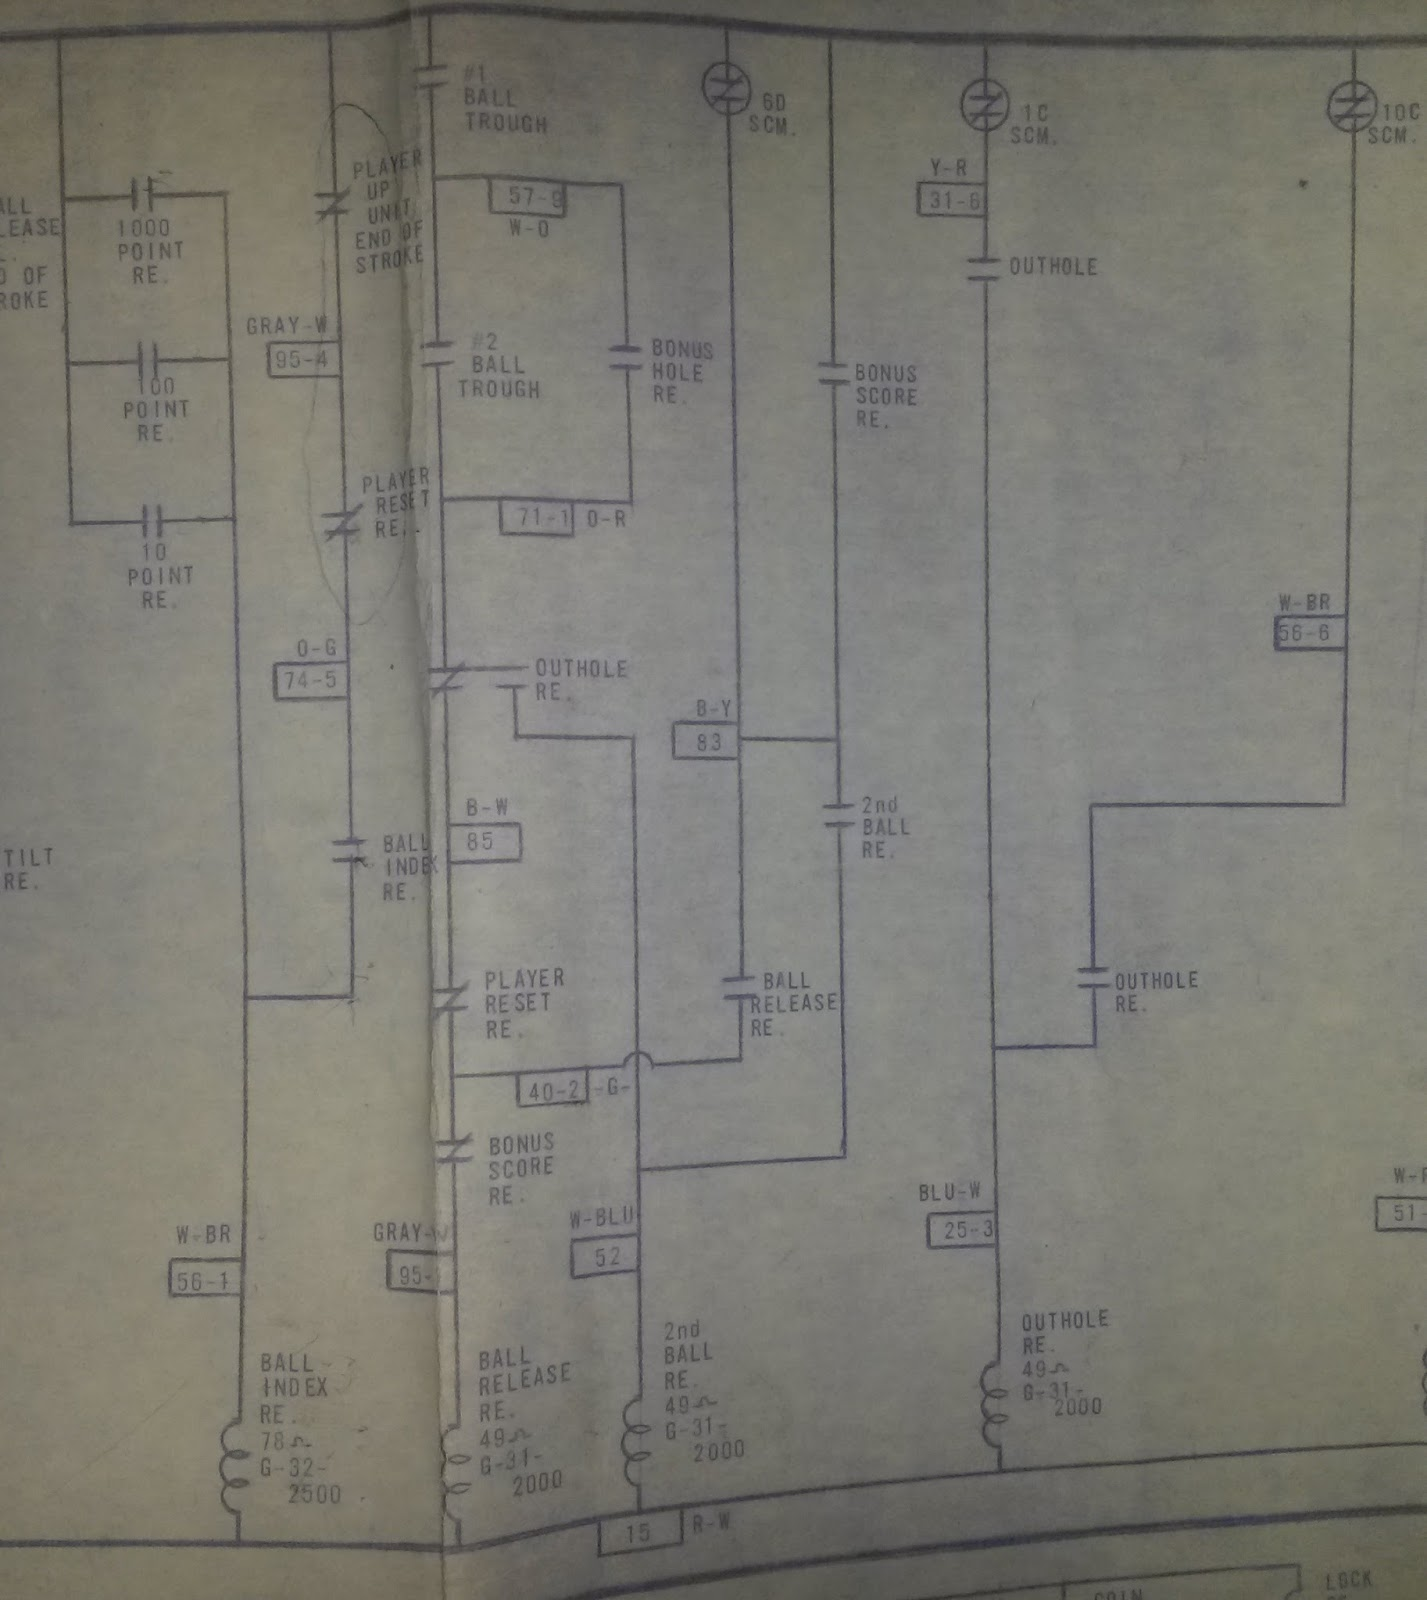 Chasing bugs. pindude152's EM pinball and bingo repair blog ... on condenser fan diagram, points and condenser diagram, condenser motor, condenser water pump, hvac compressor diagram, condenser parts diagram, condenser coil, condenser relay diagram,